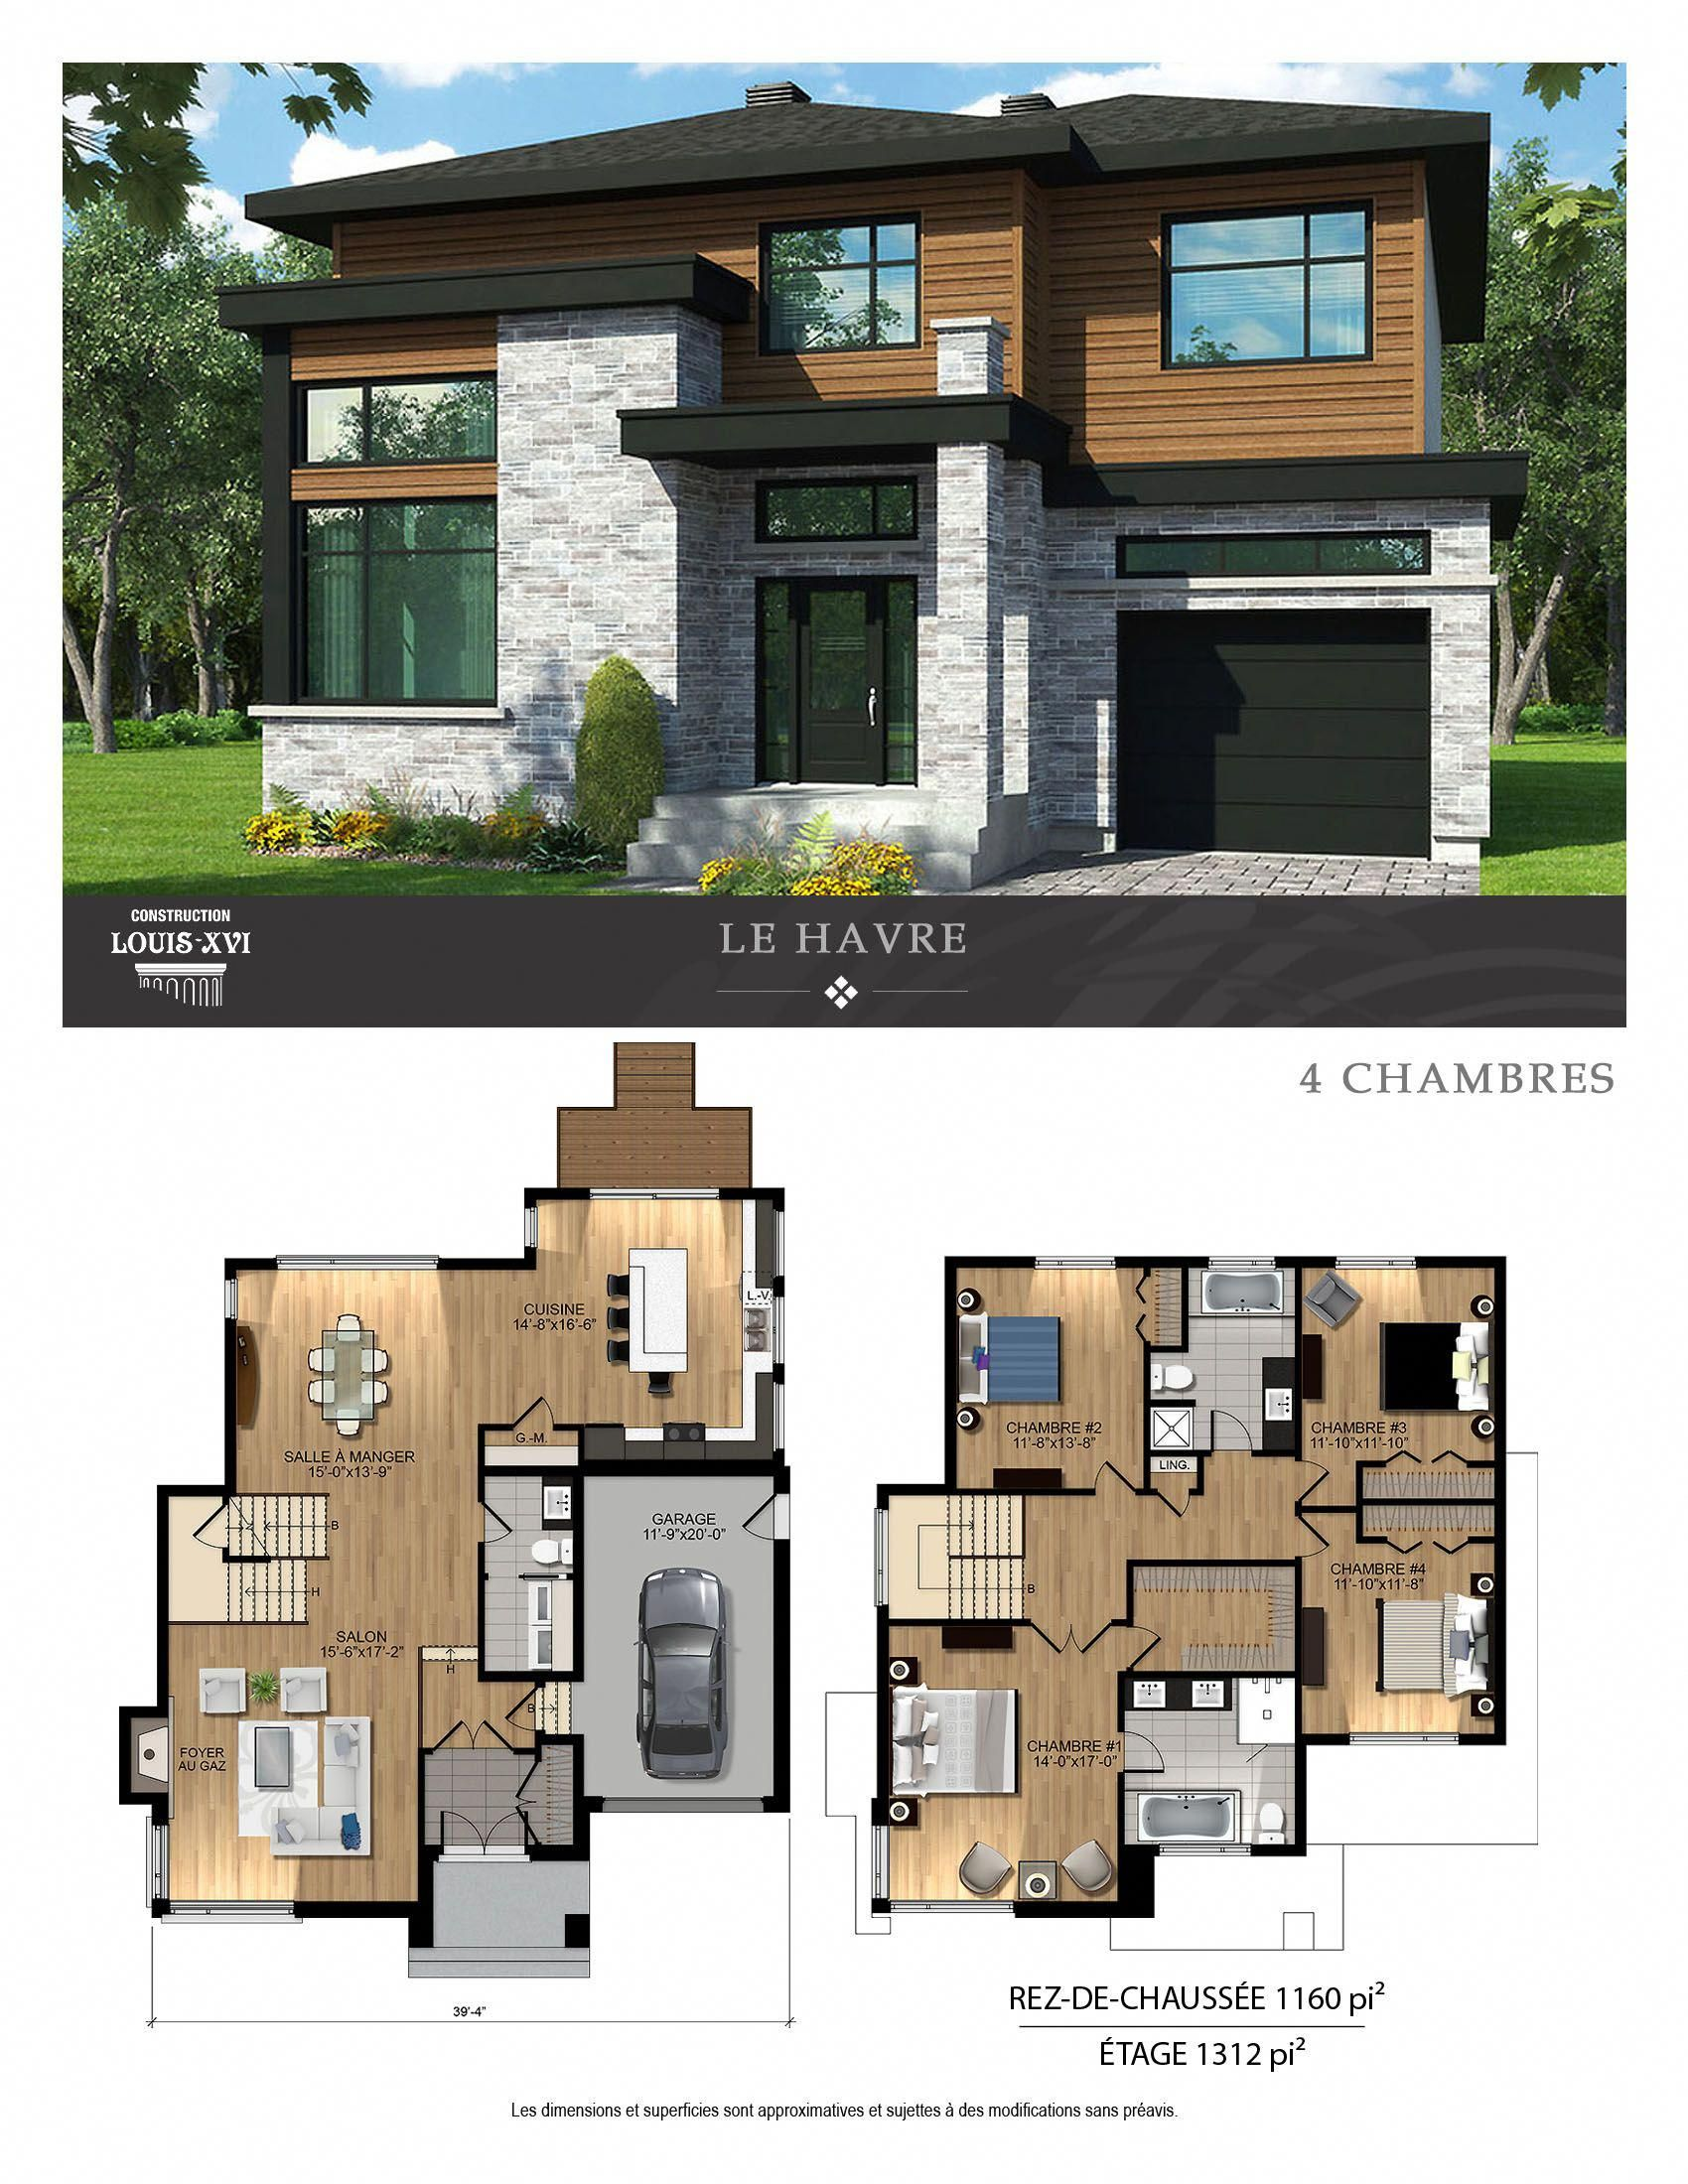 House Helpful Tips For Modern Home Design Floor Plans Modernhomedesign Modern House Floor Plans Sims 4 Modern House Contemporary House Plans